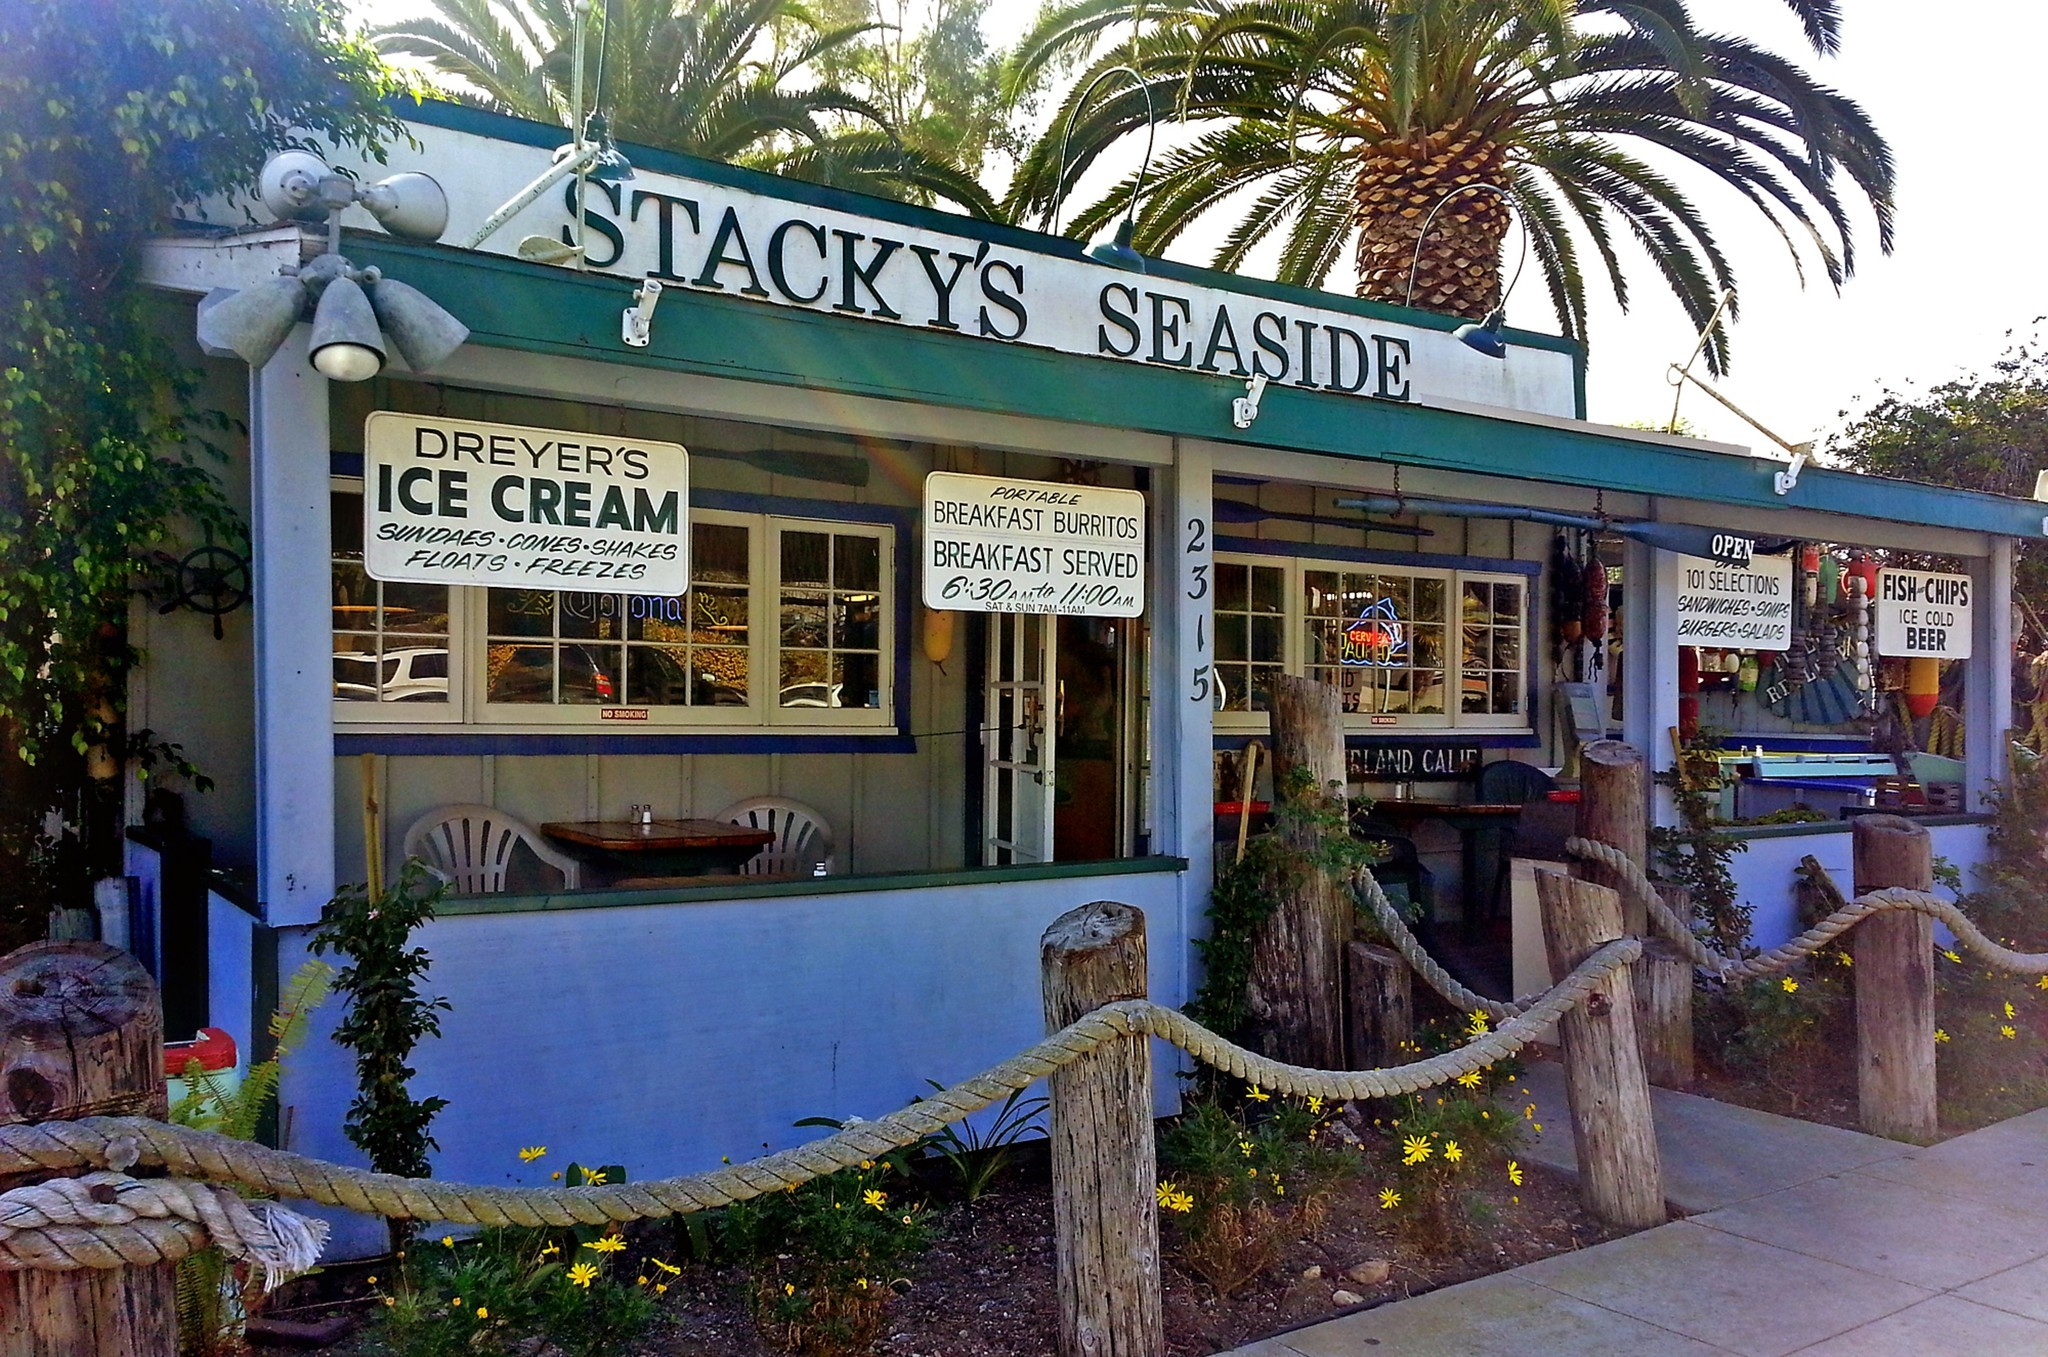 A getaway to sunny Summerland - Stacky